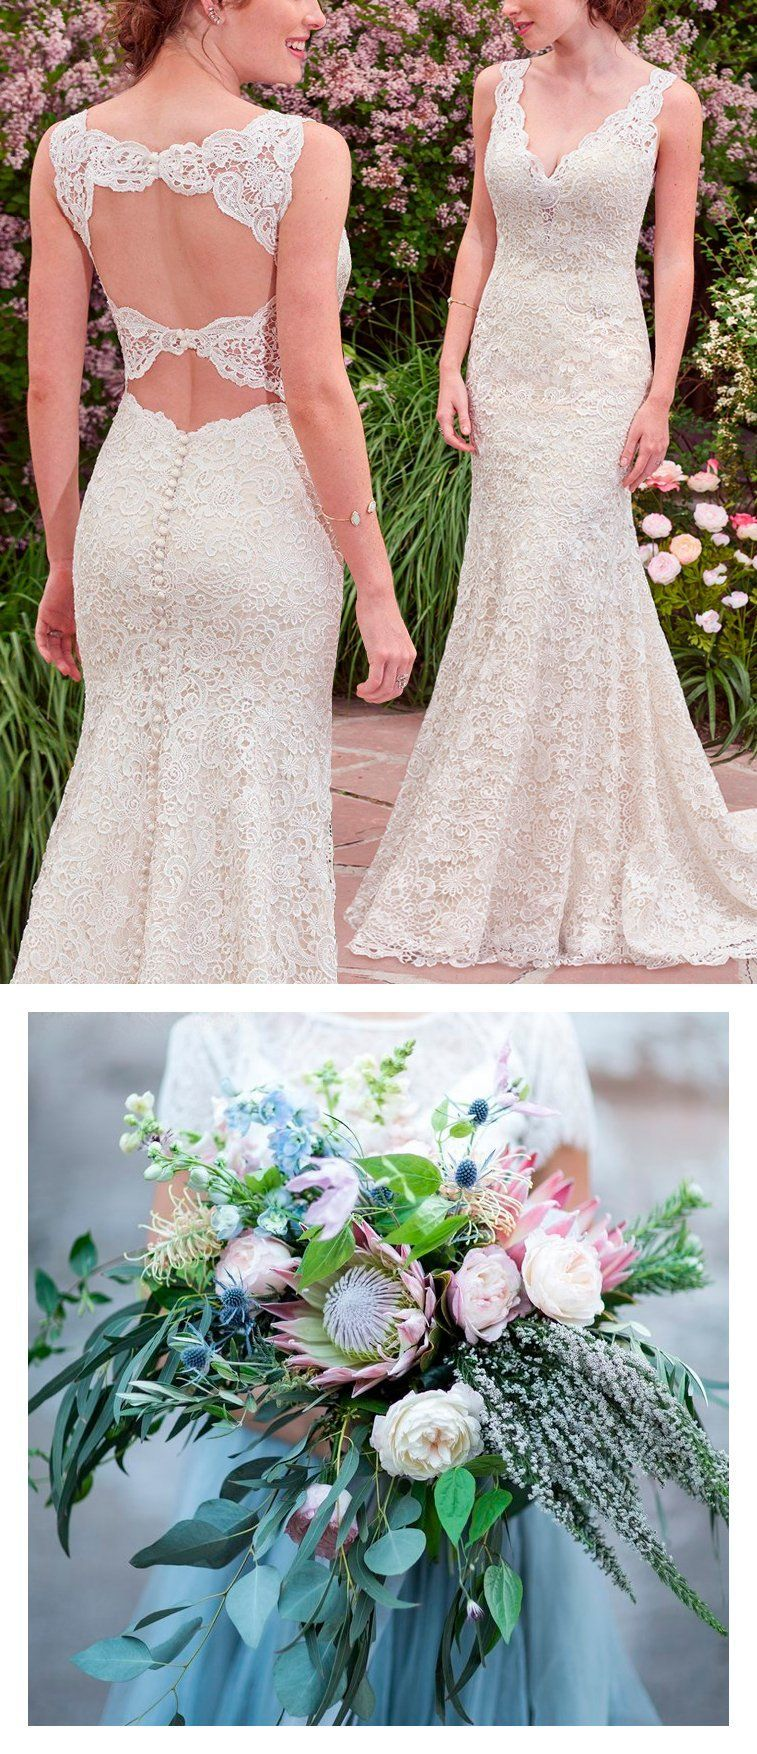 Lace hippie wedding dress   Boho Bouquets For Your Eclectic Wedding Gown  Lace boho wedding